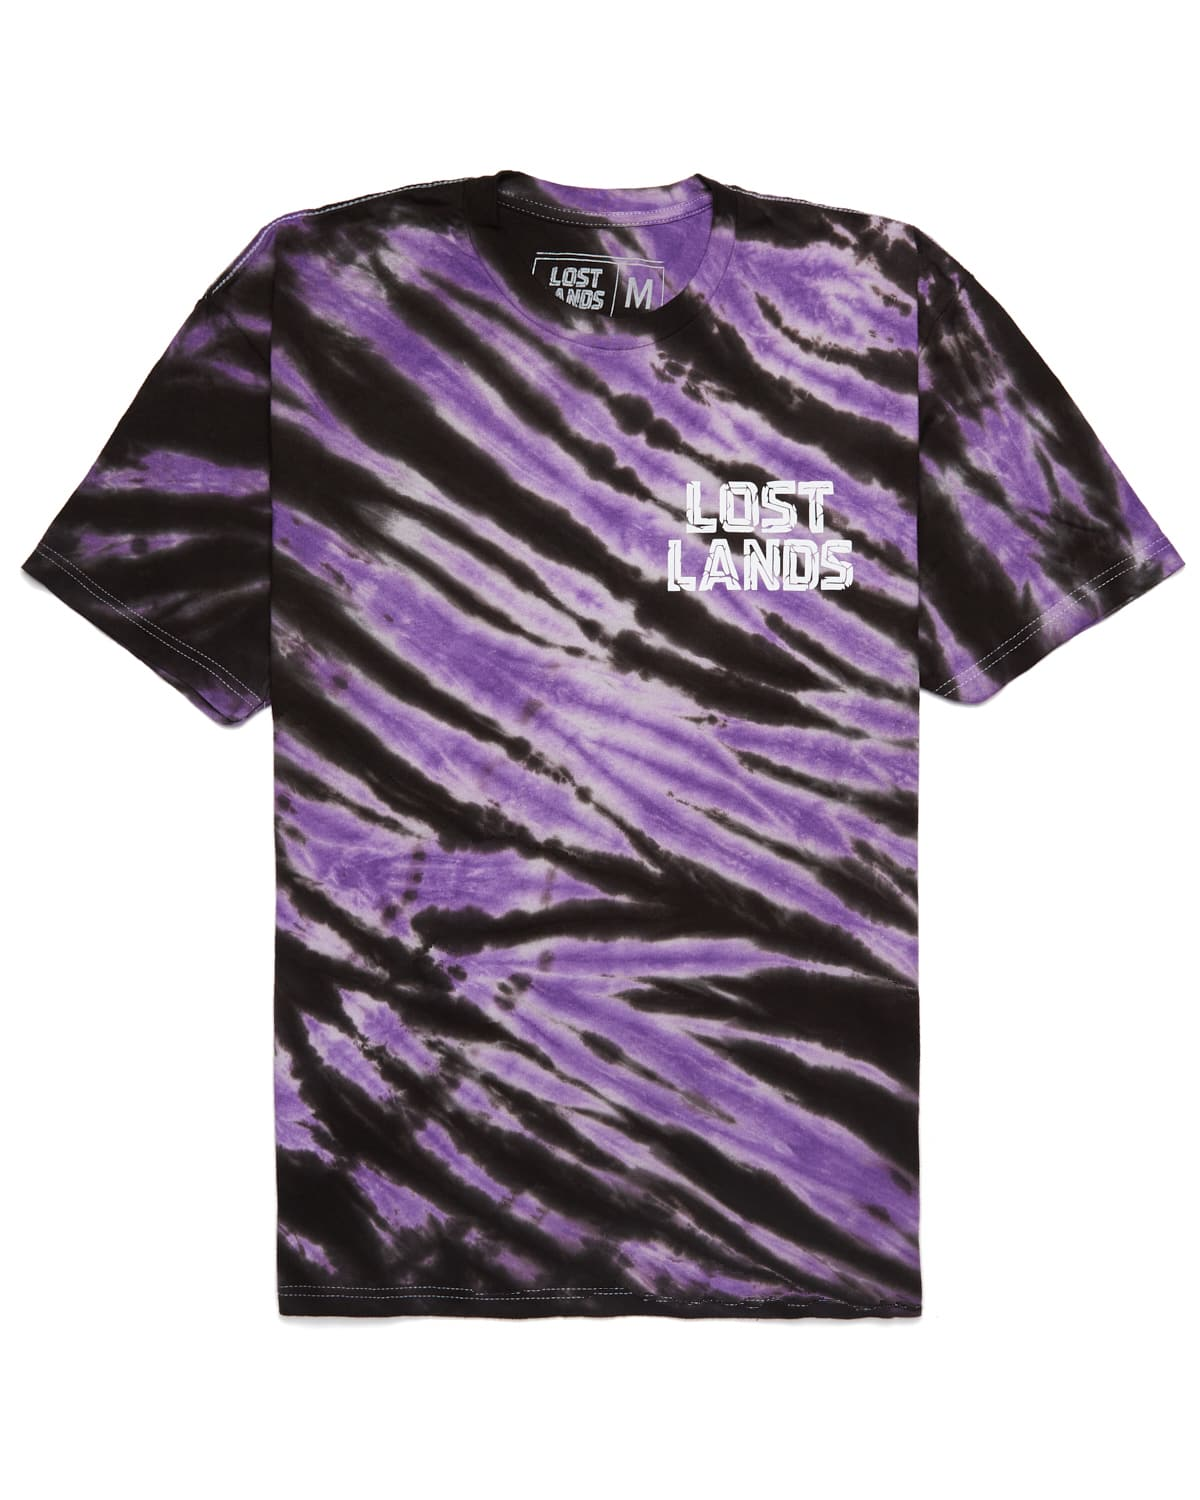 Lost Lands 'Slashed' Tie Dye T-Shirt (Purple)